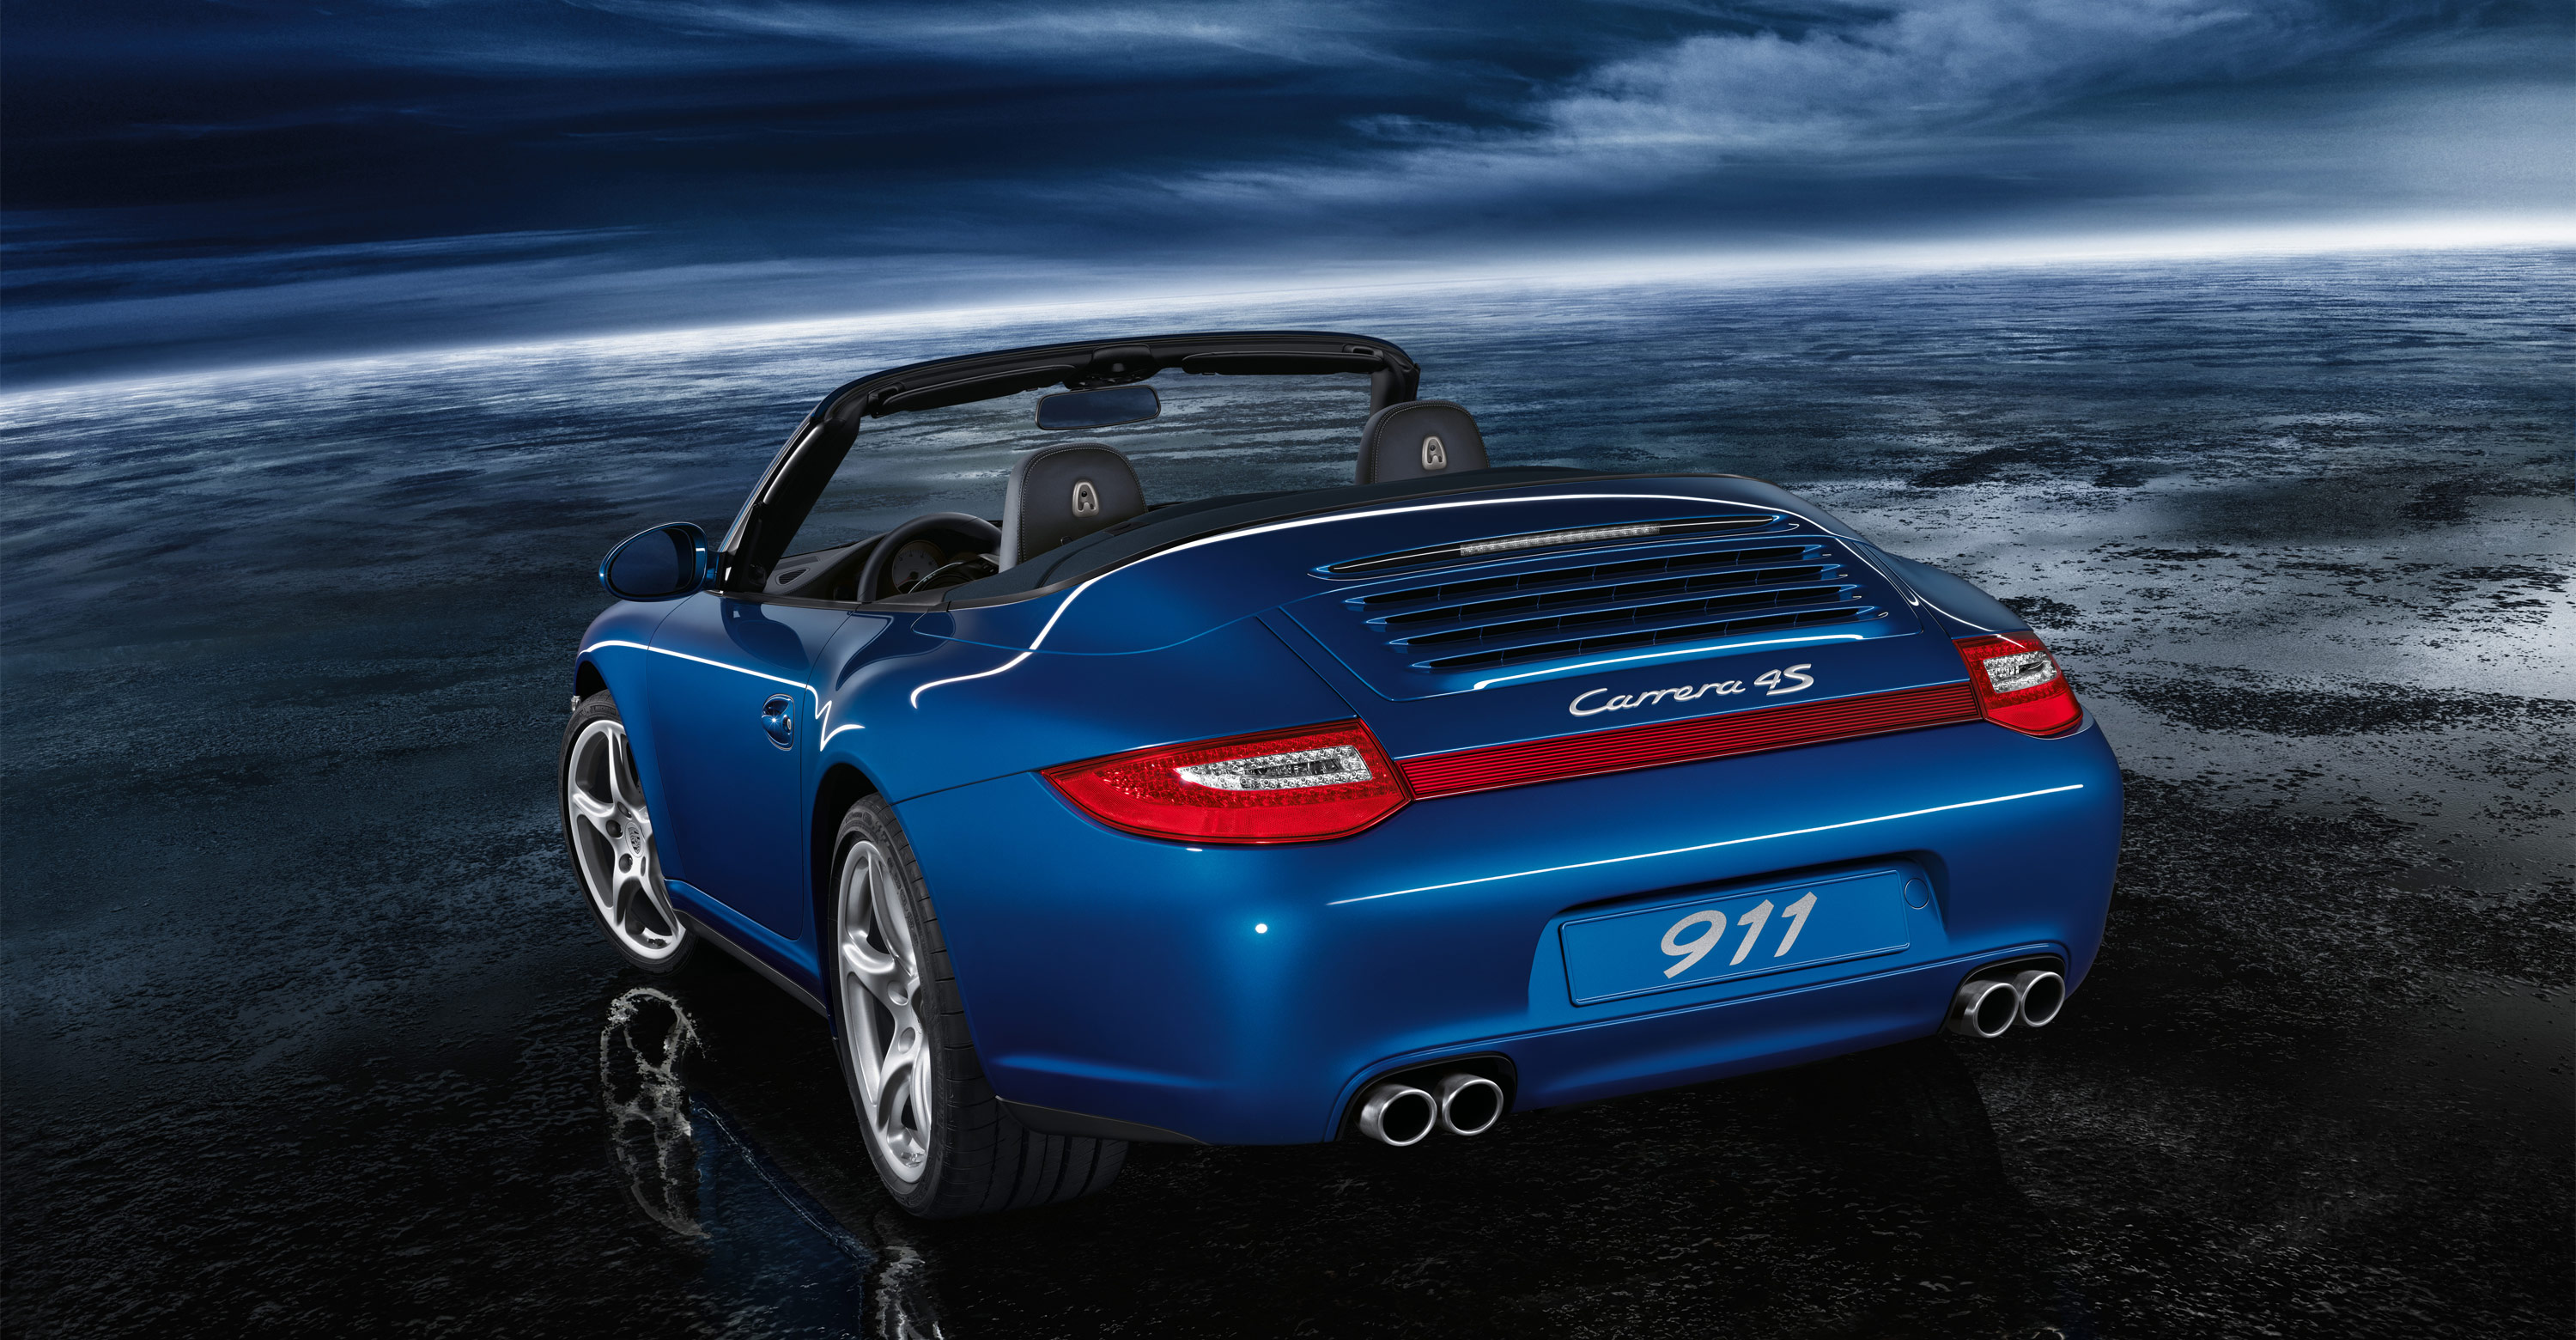 Porsche Targa Gts in addition Turbocabrio Px together with Ice Blue Porsche Turbo S Wallpaper as well Porsche Targa Gts together with Hqdefault. on porsche 911 gts review